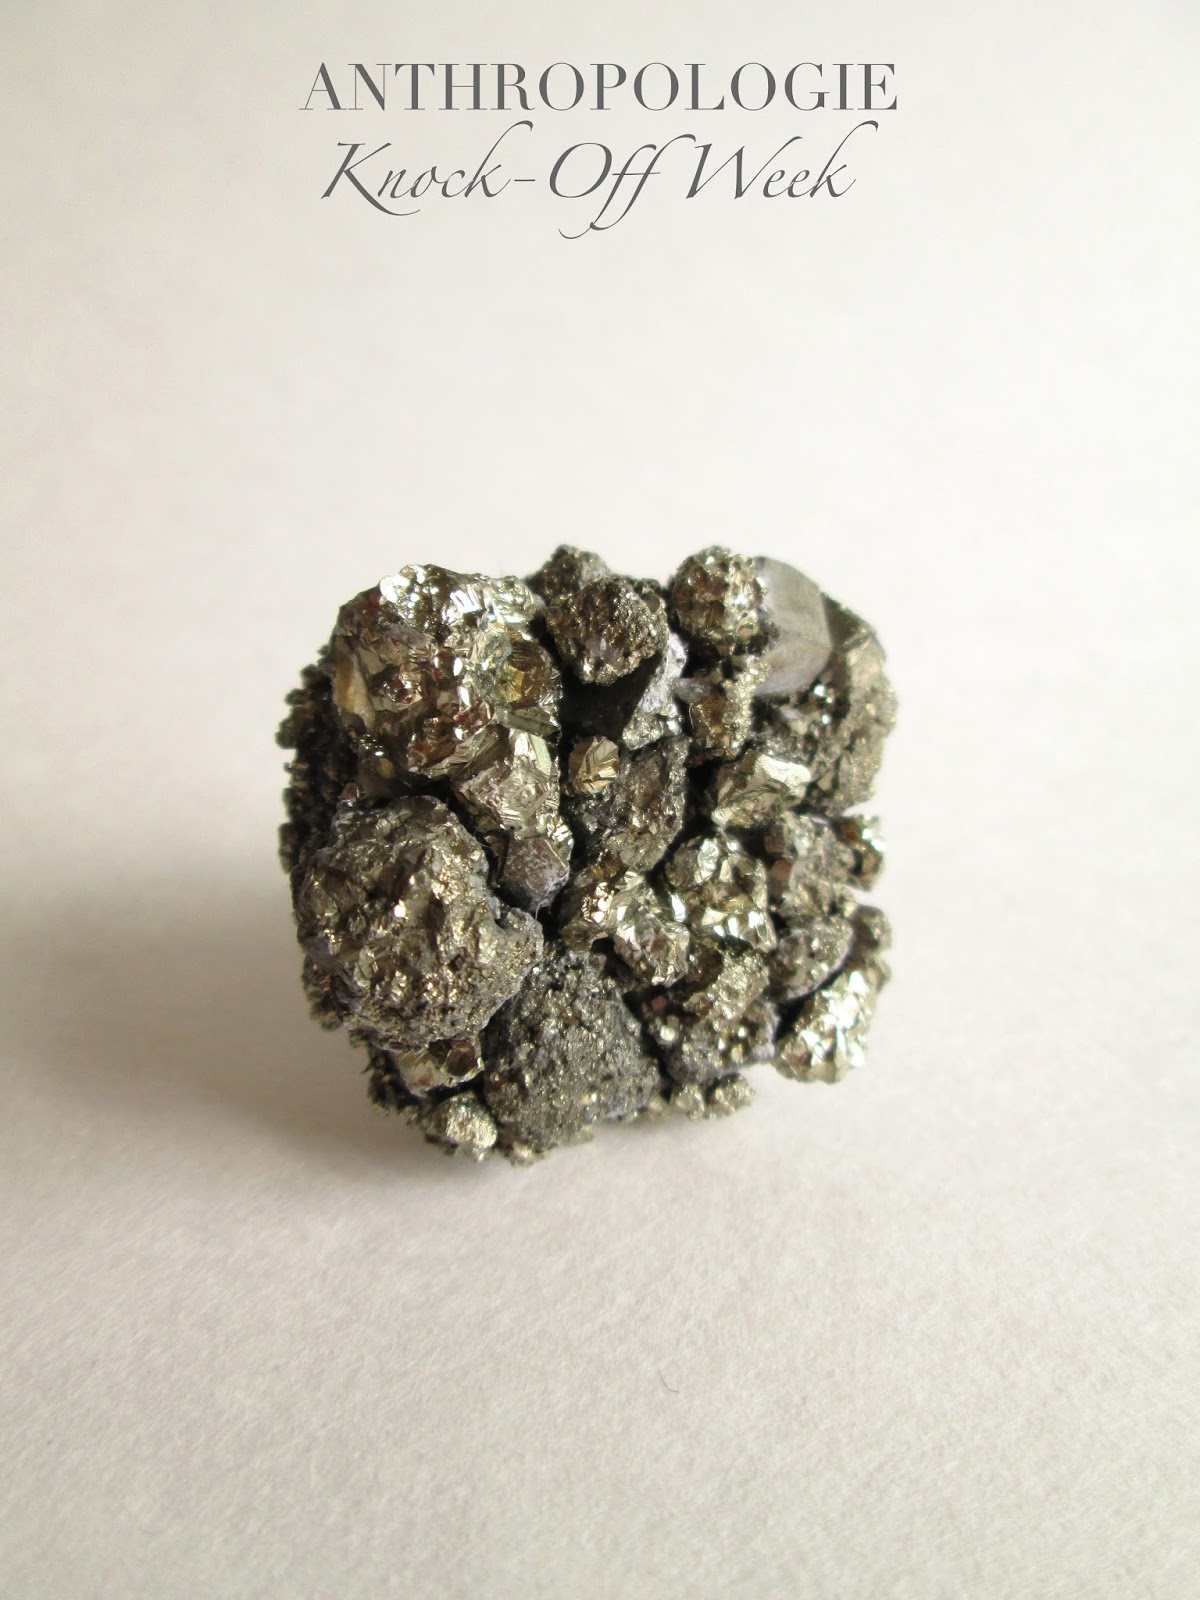 Anthropologie Precious Stone Knob